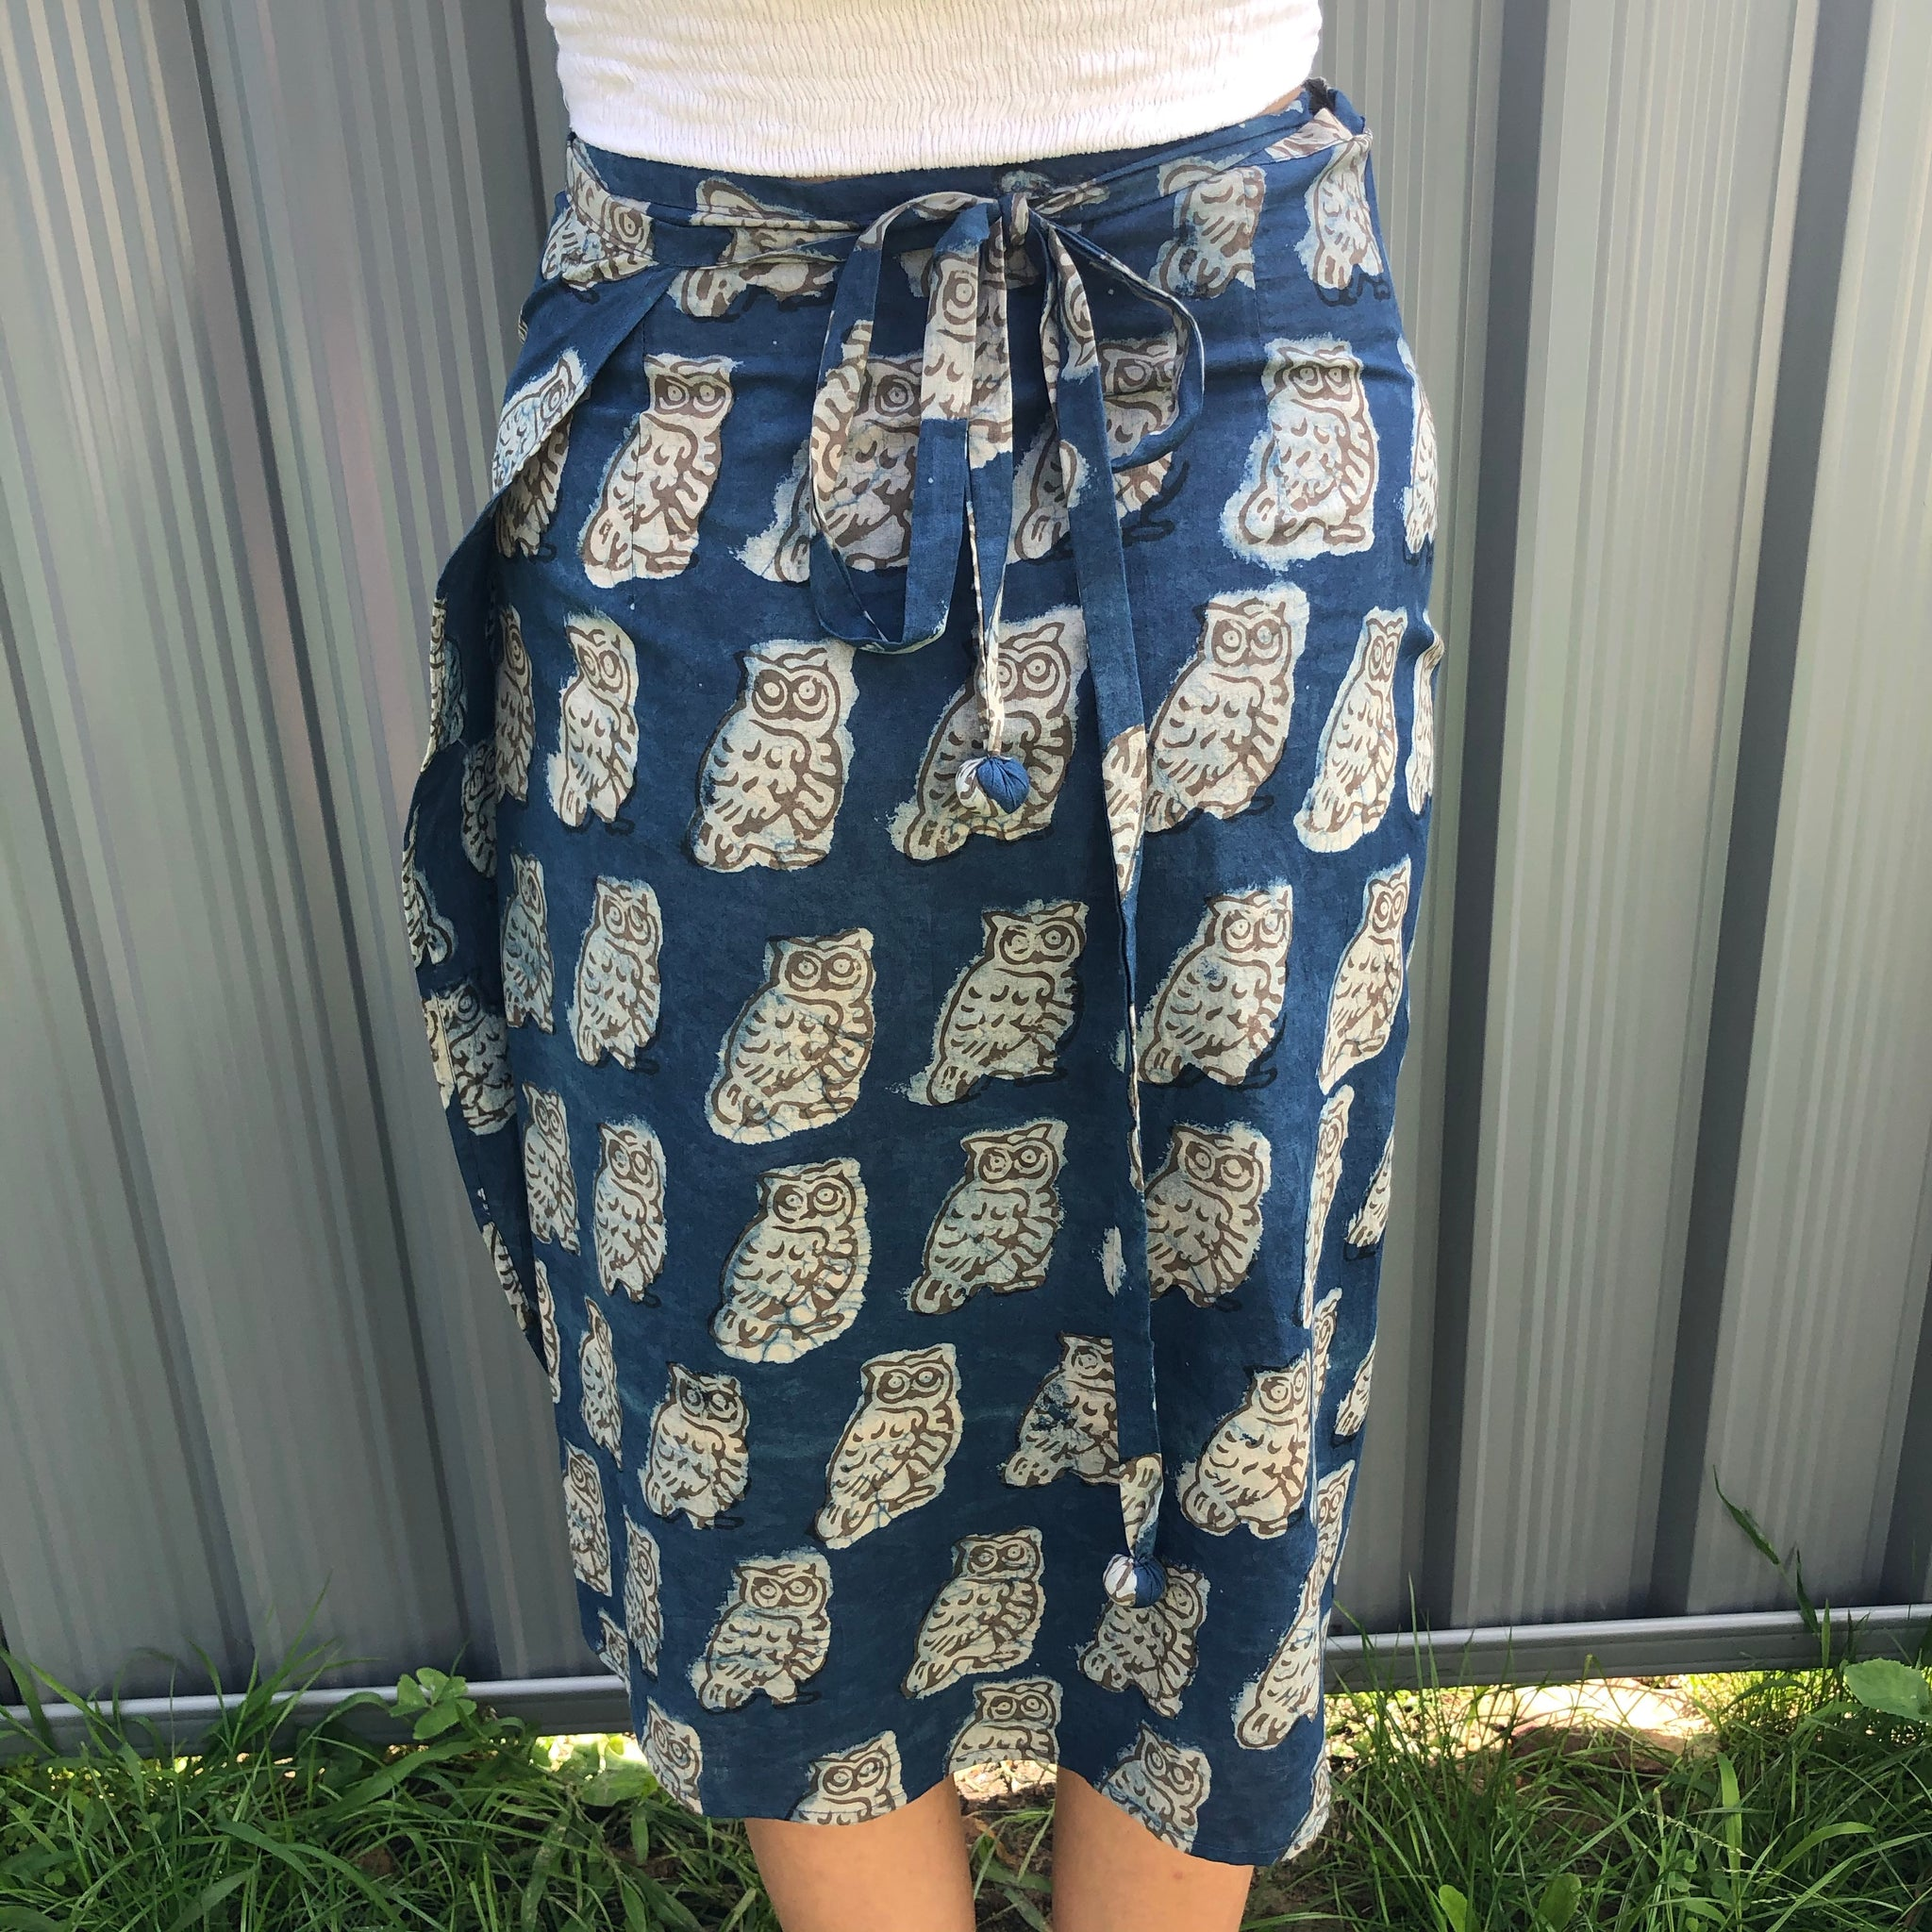 Fair Trade Ethical Cotton Mud Resistant Print Wrap Skirt. Indigo Owls design